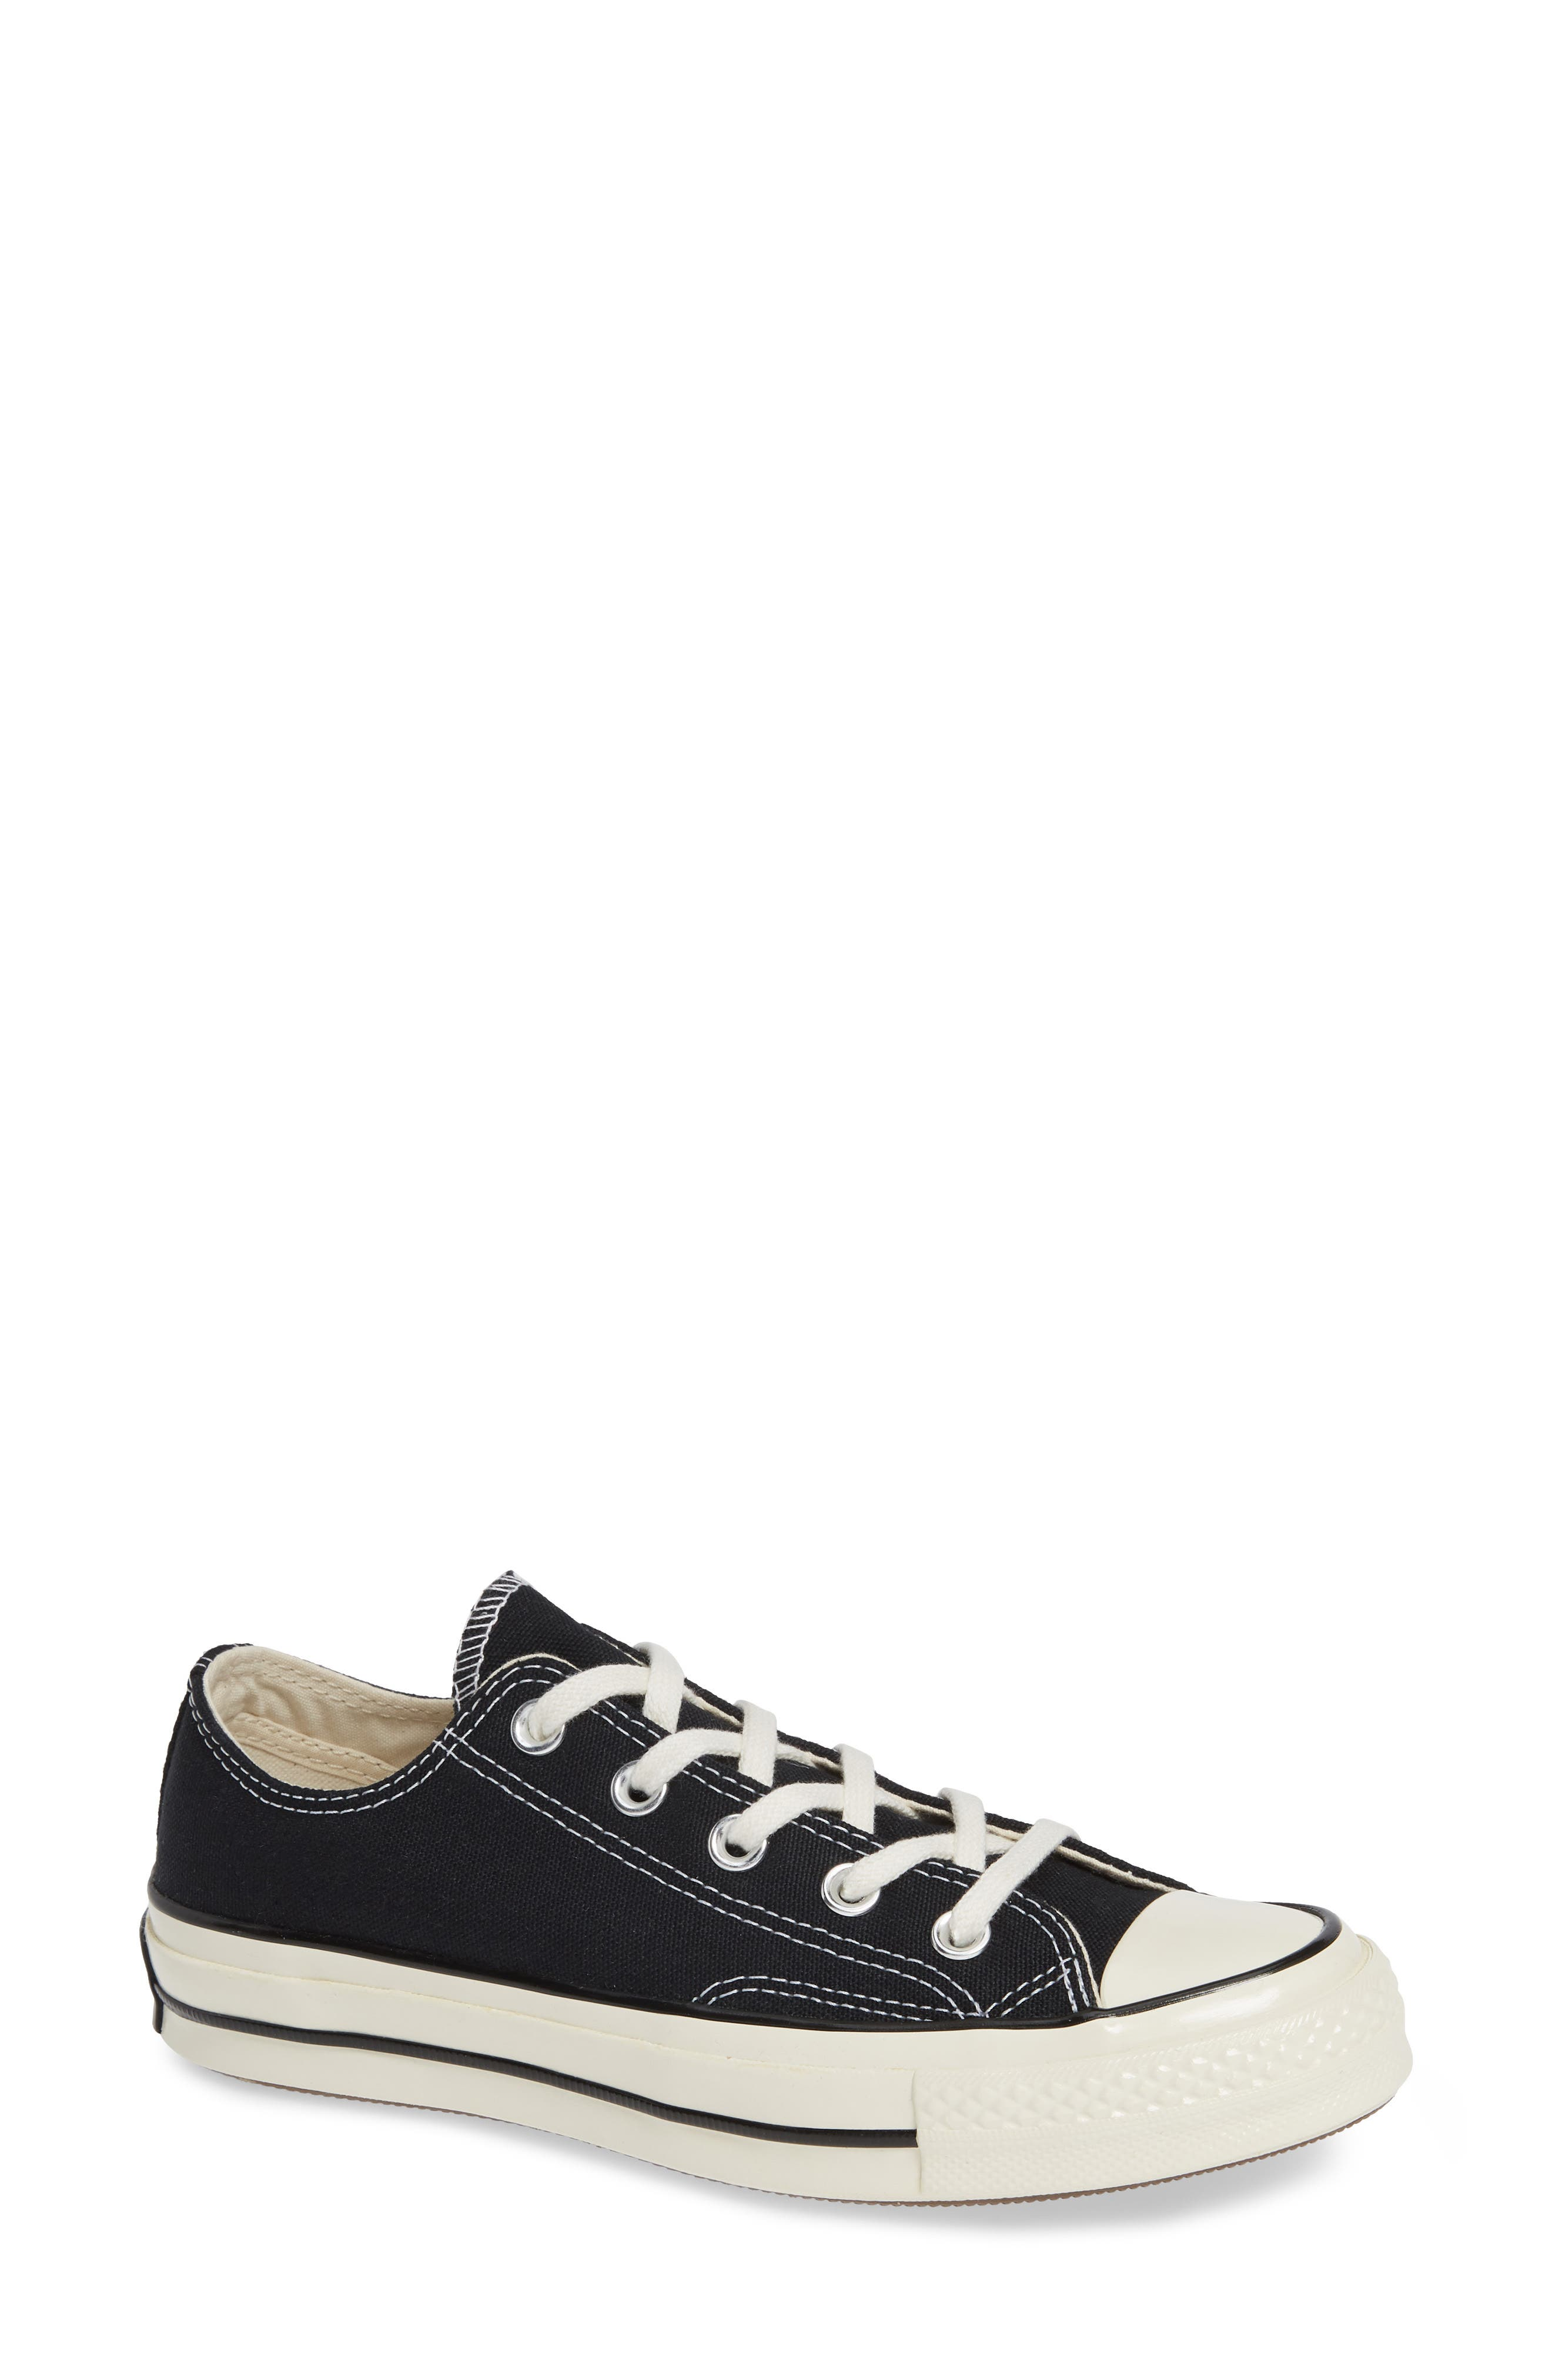 CONVERSE Chuck Taylor<sup>®</sup> All Star<sup>®</sup> Chuck 70 Ox Sneaker, Main, color, BLACK/ BLACK/ EGRET